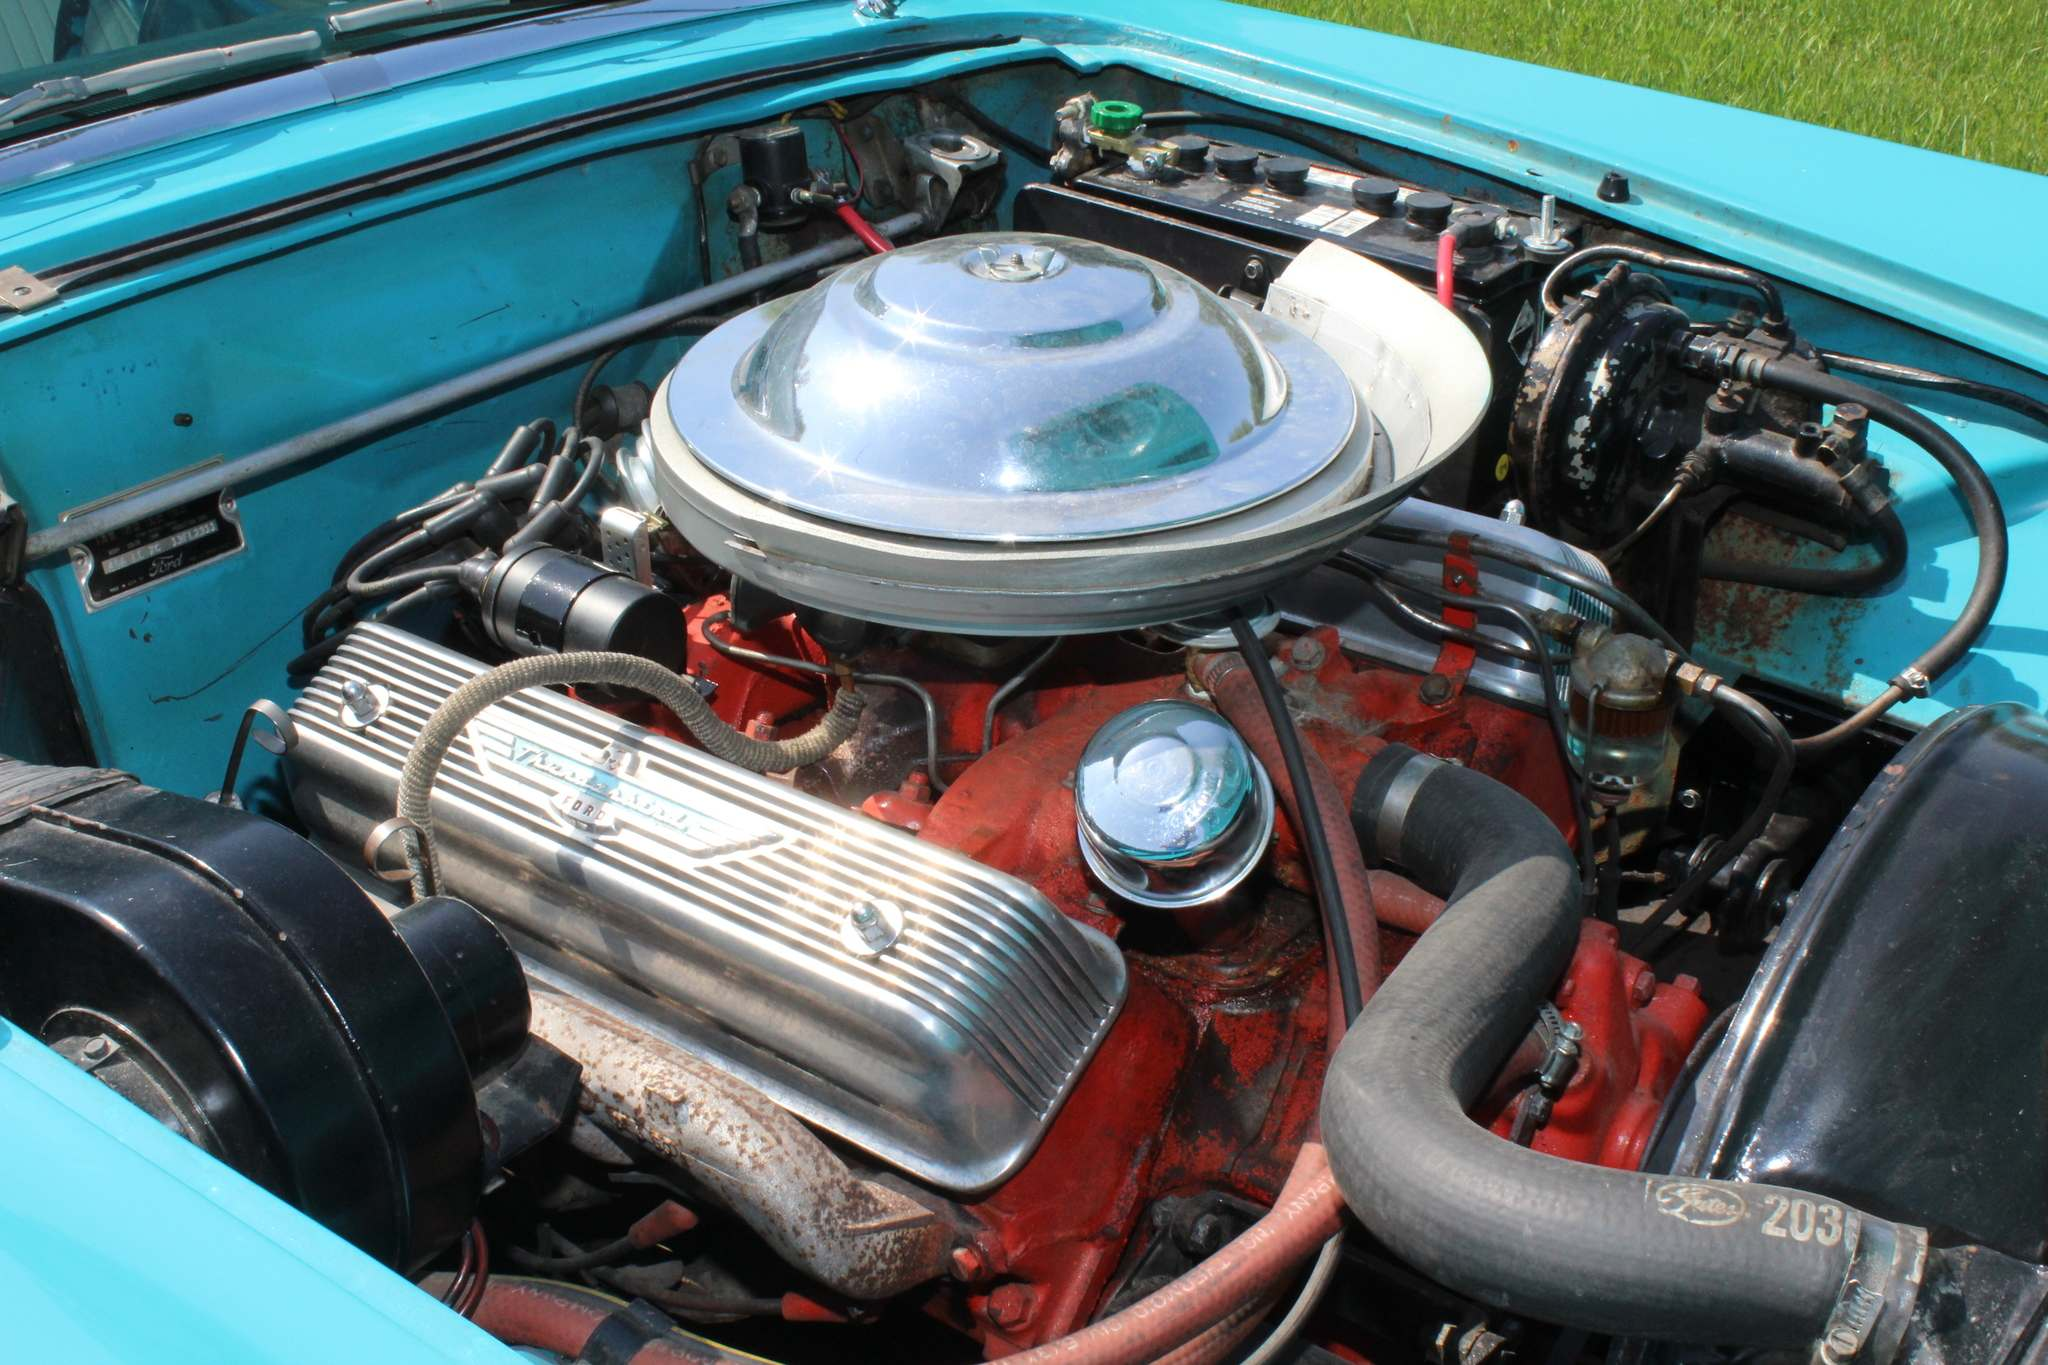 Under the hood is a 225-horsepower, 312-cubic-inch V-8 engine.